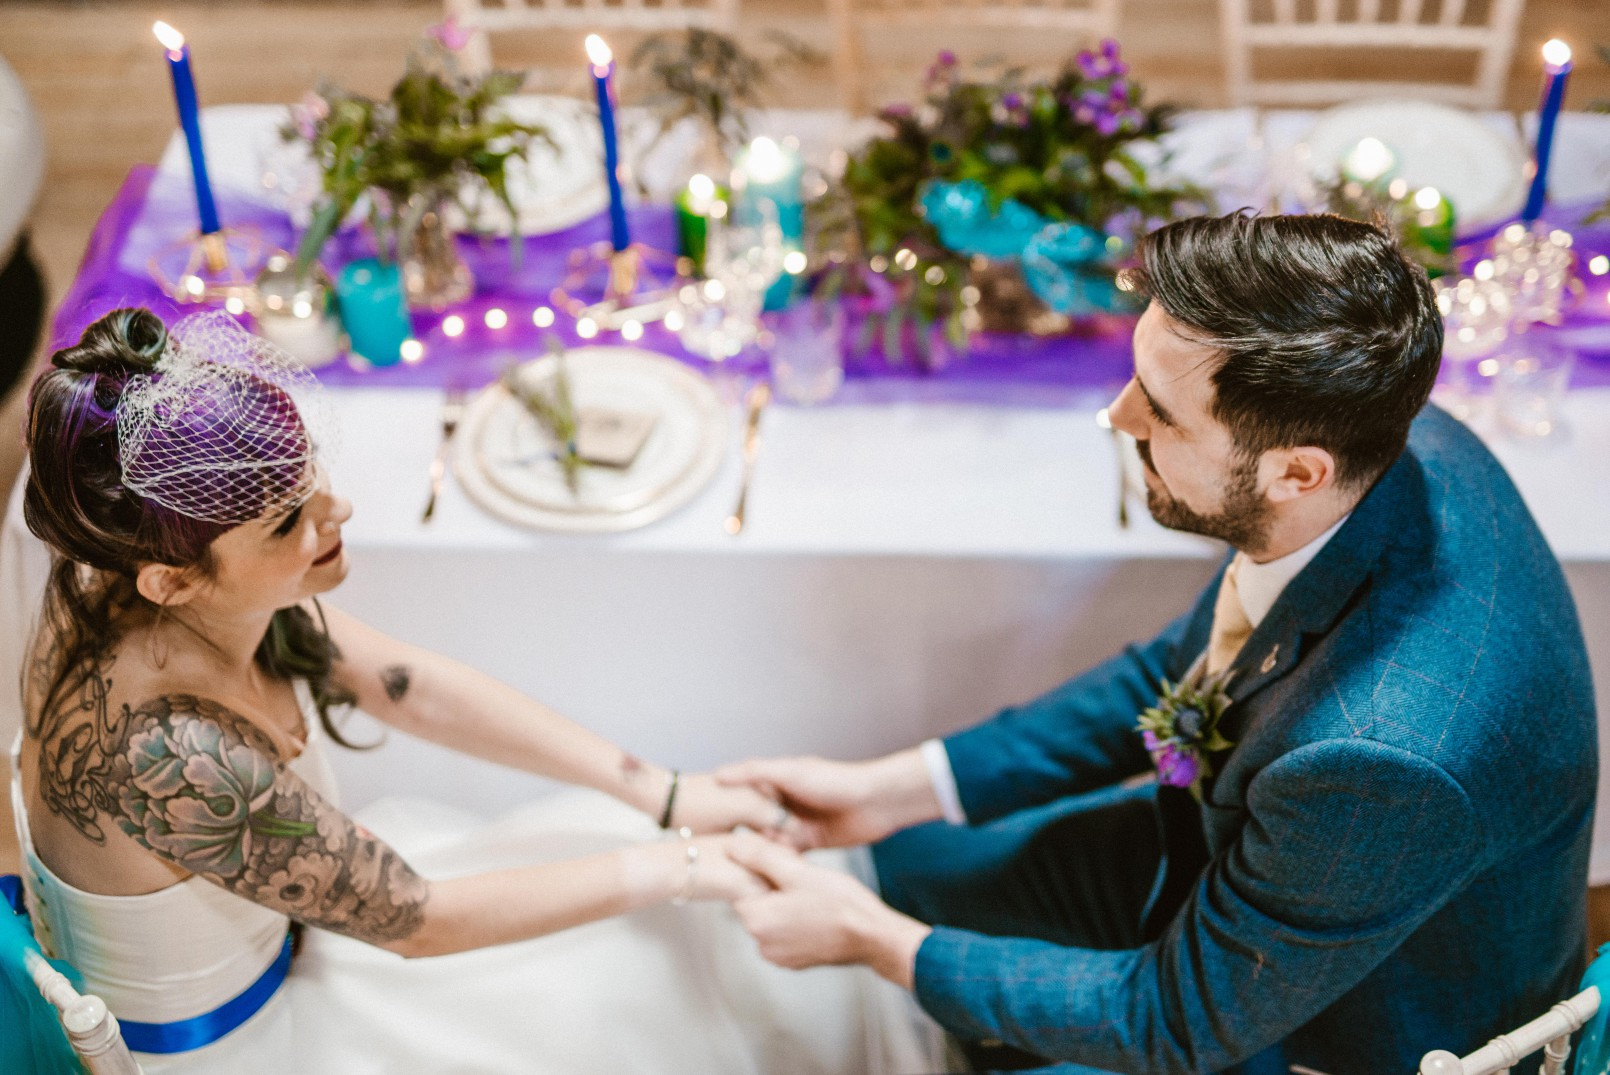 Peacock barns - alternative unconventional wedding photoshoot - rustic decadent - couple holding hands